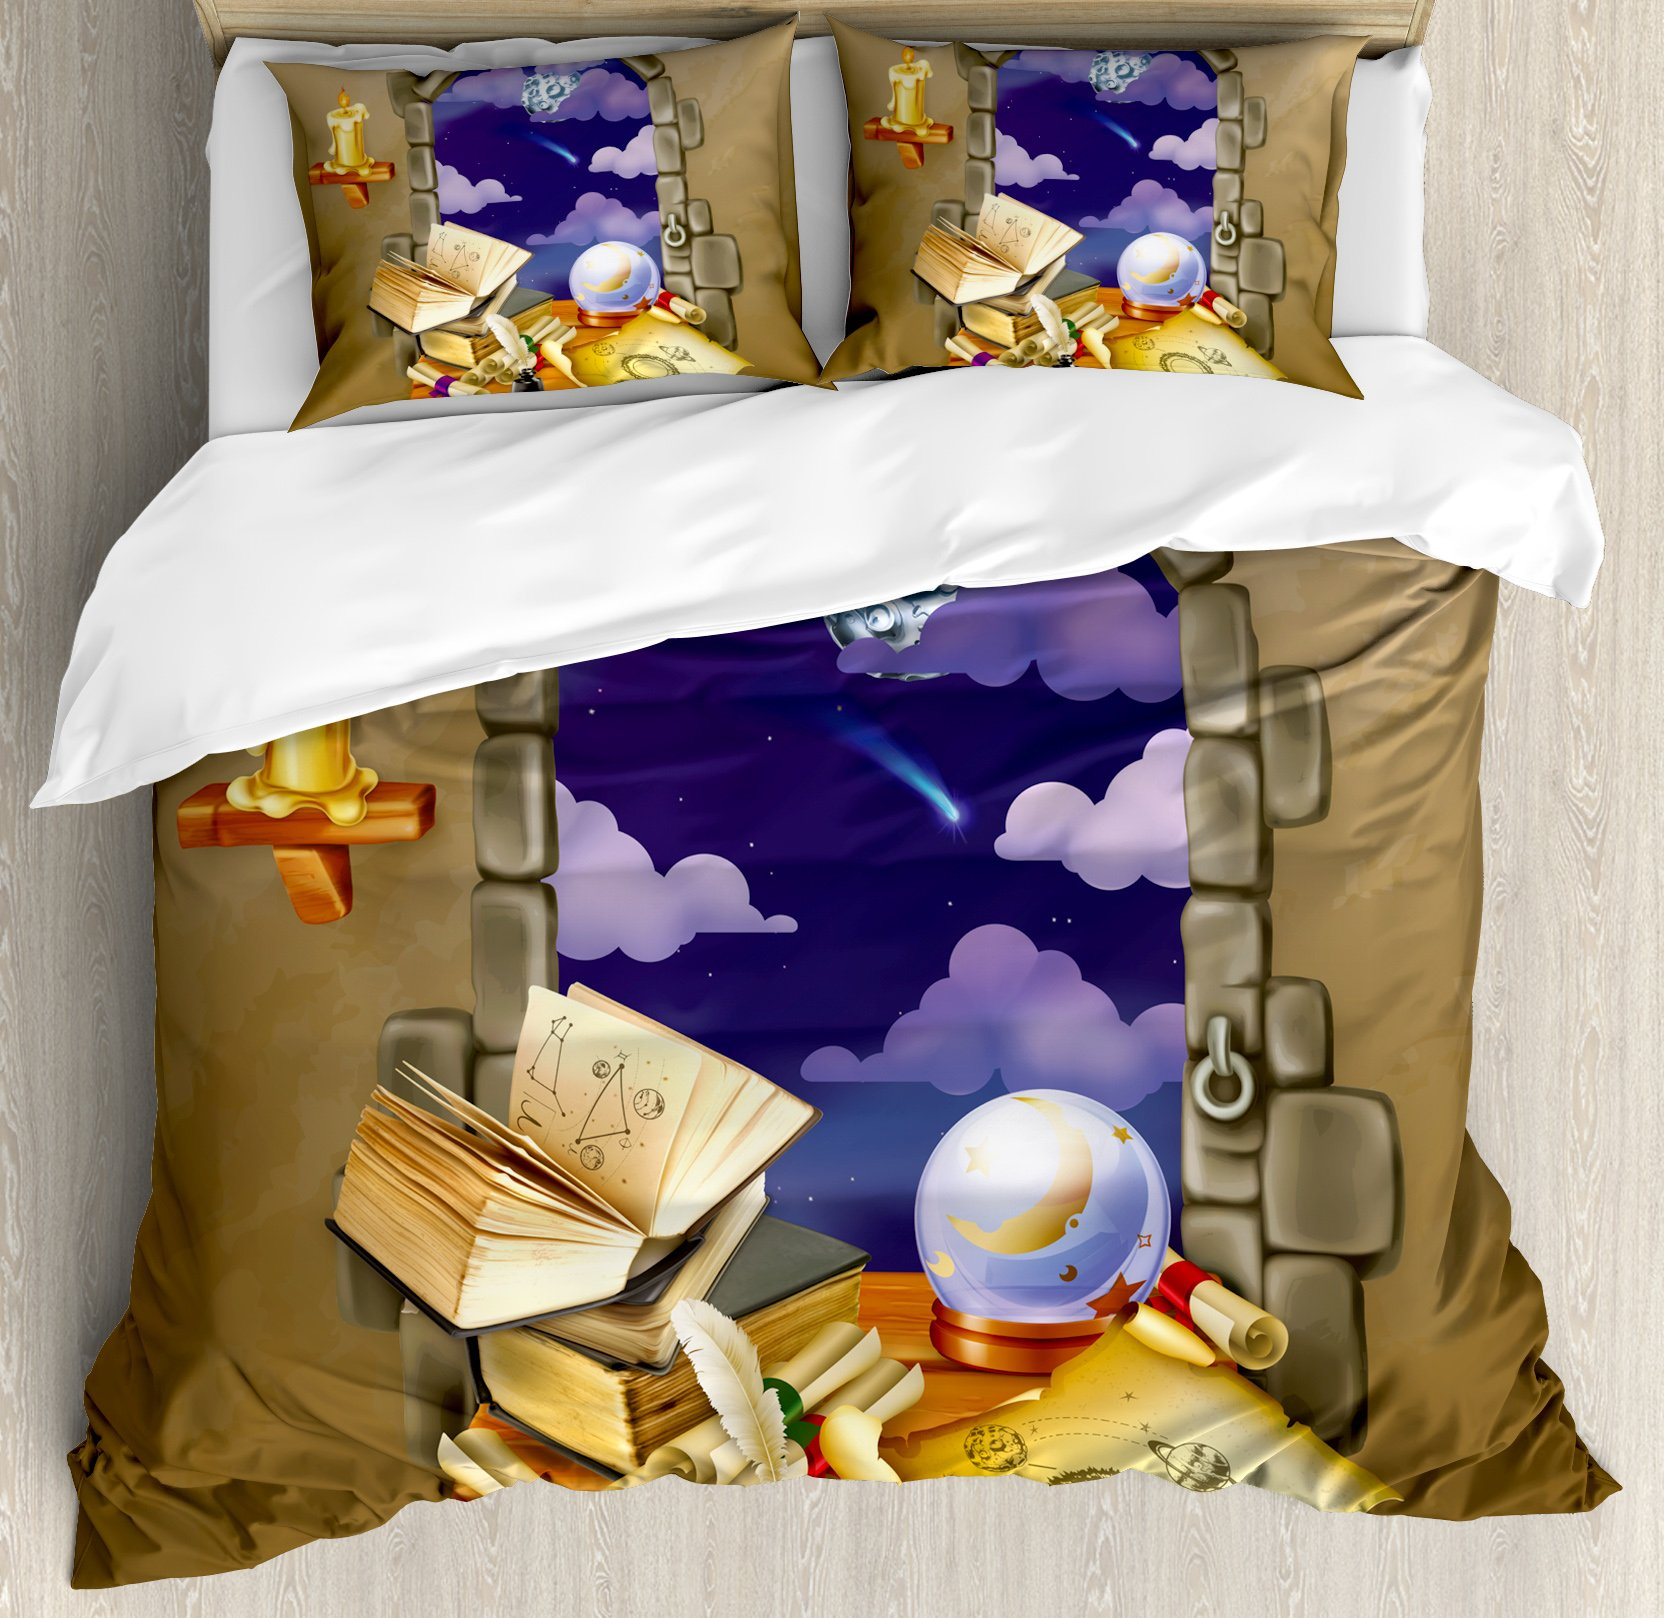 Astrology Duvet Cover Set King Size by Ambesonne, Medieval Ancient Castle Window with Crystal Ball Clouds Parchment, Decorative 3 Piece Bedding Set with 2 Pillow Shams, Teal Grey White and Purple